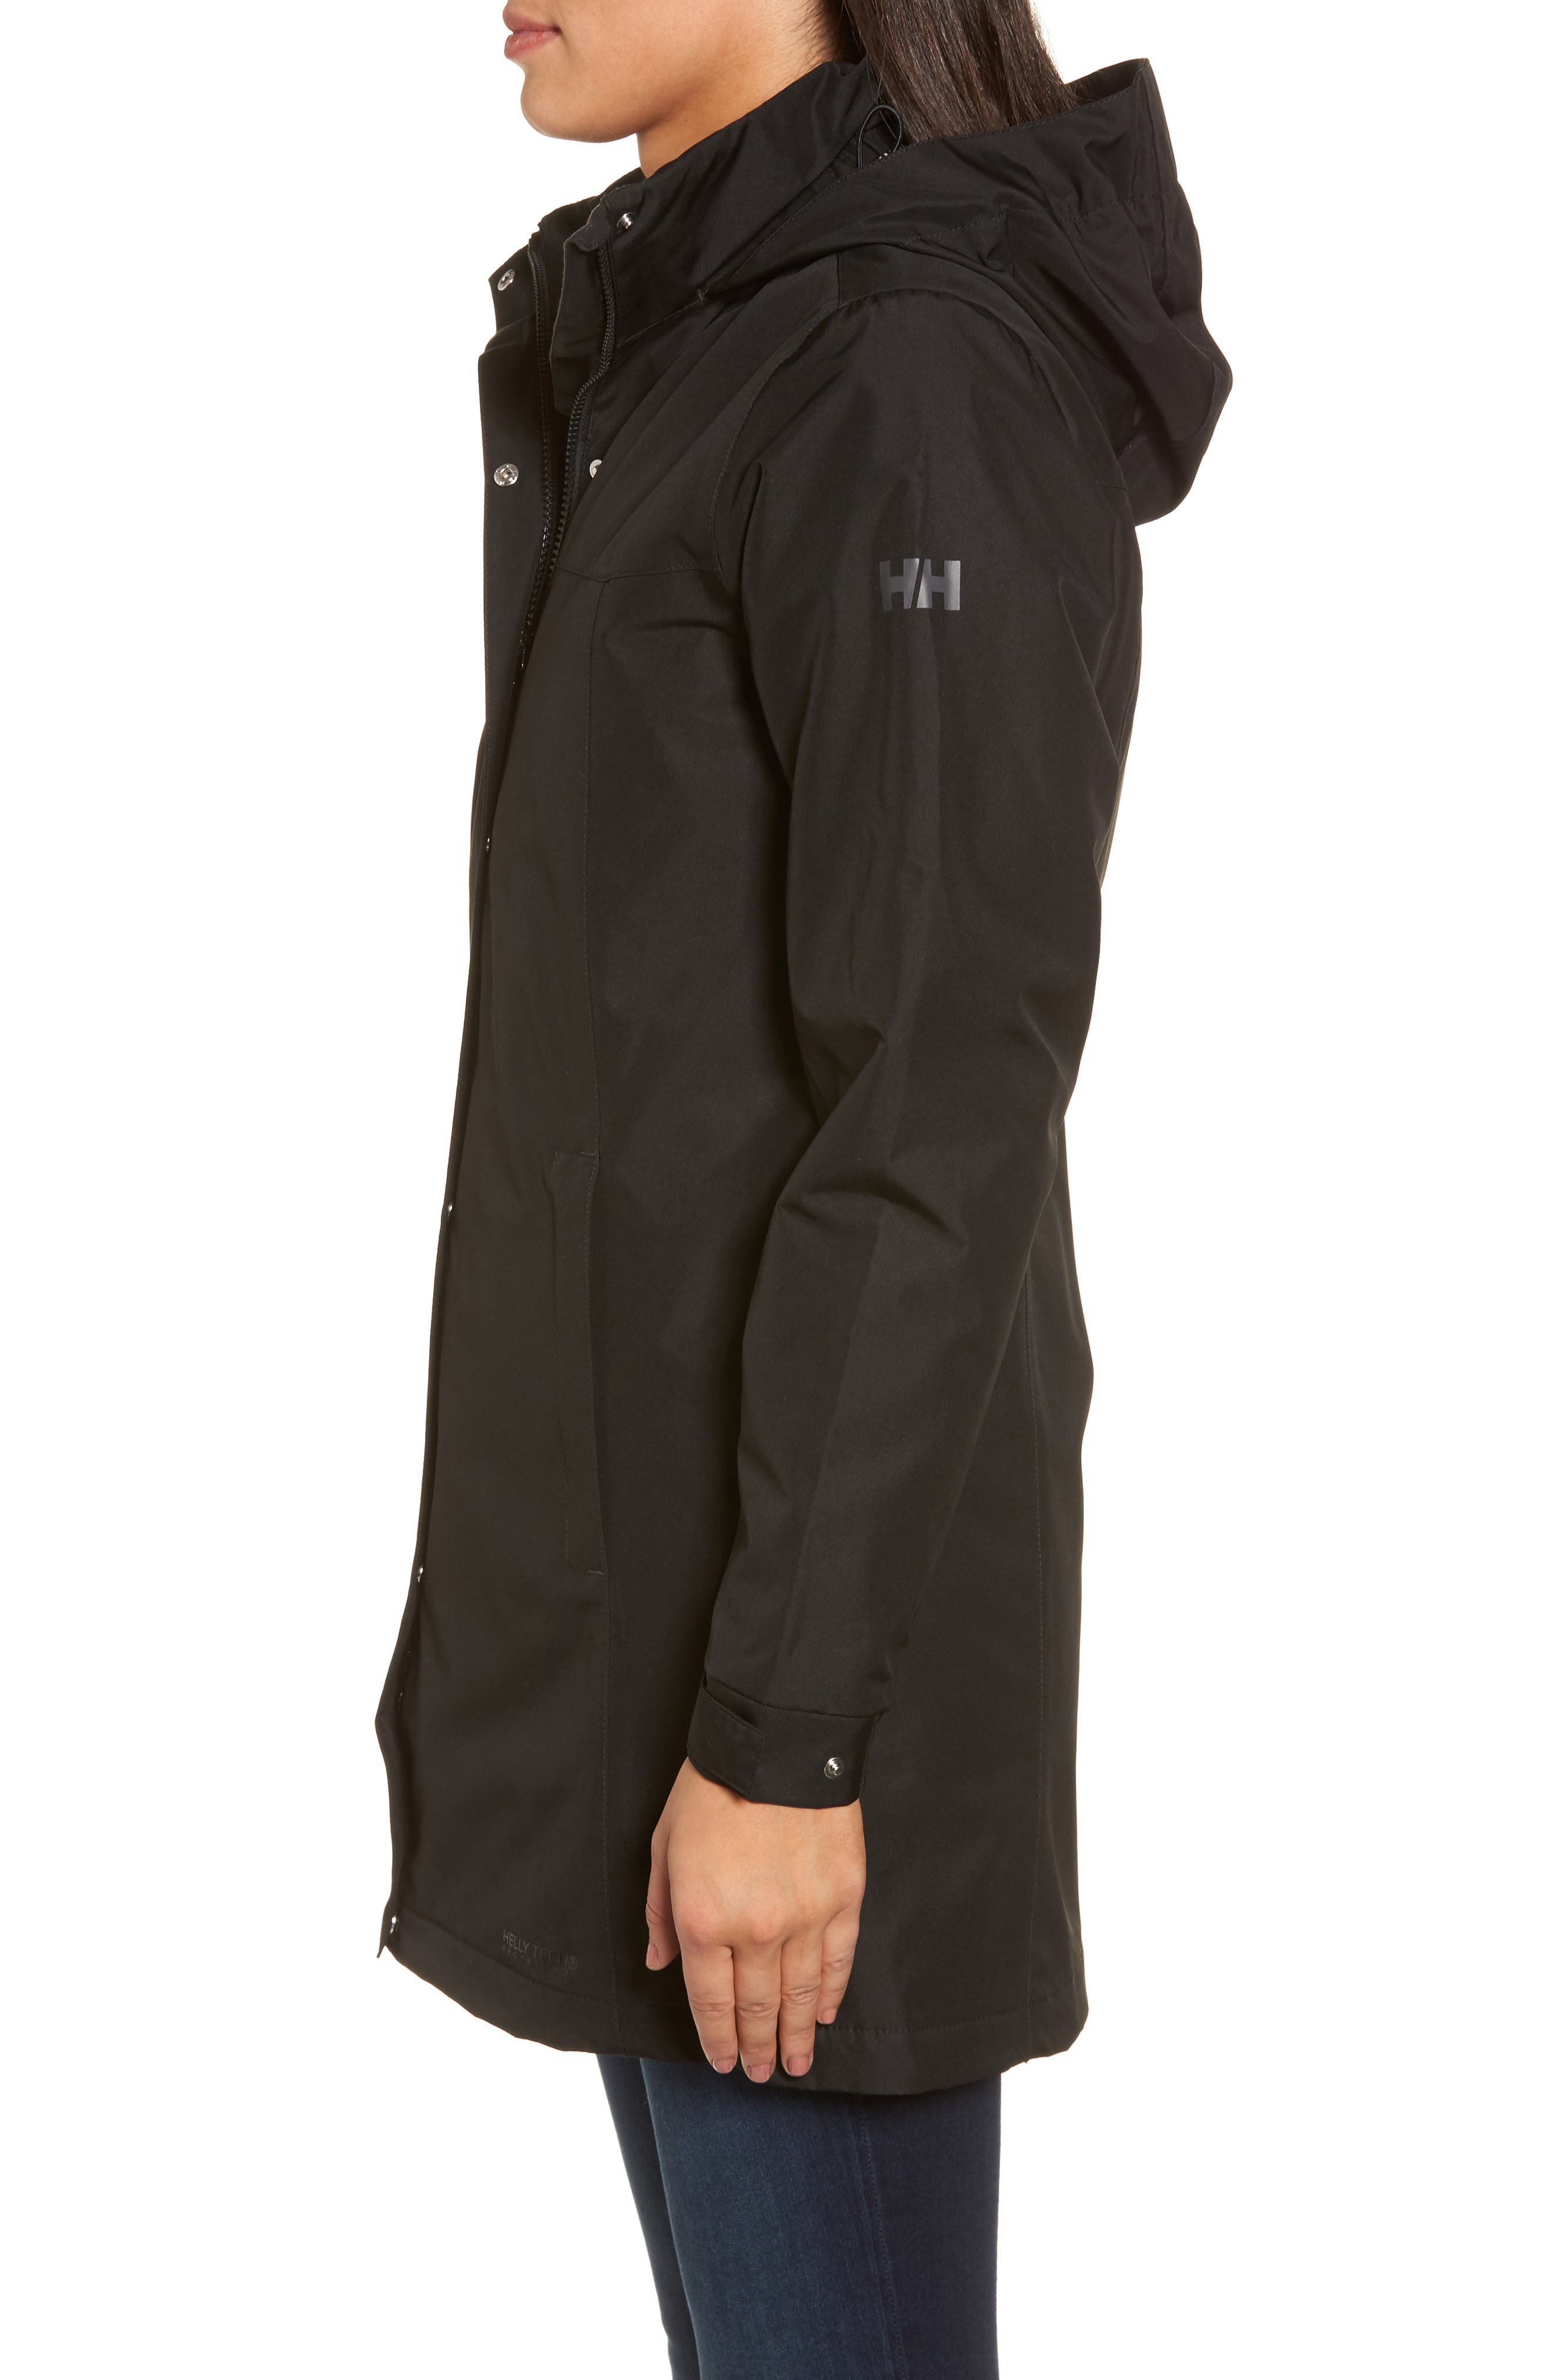 Aden Hooded Insulated Rain Jacket,                             Alternate thumbnail 3, color,                             Black